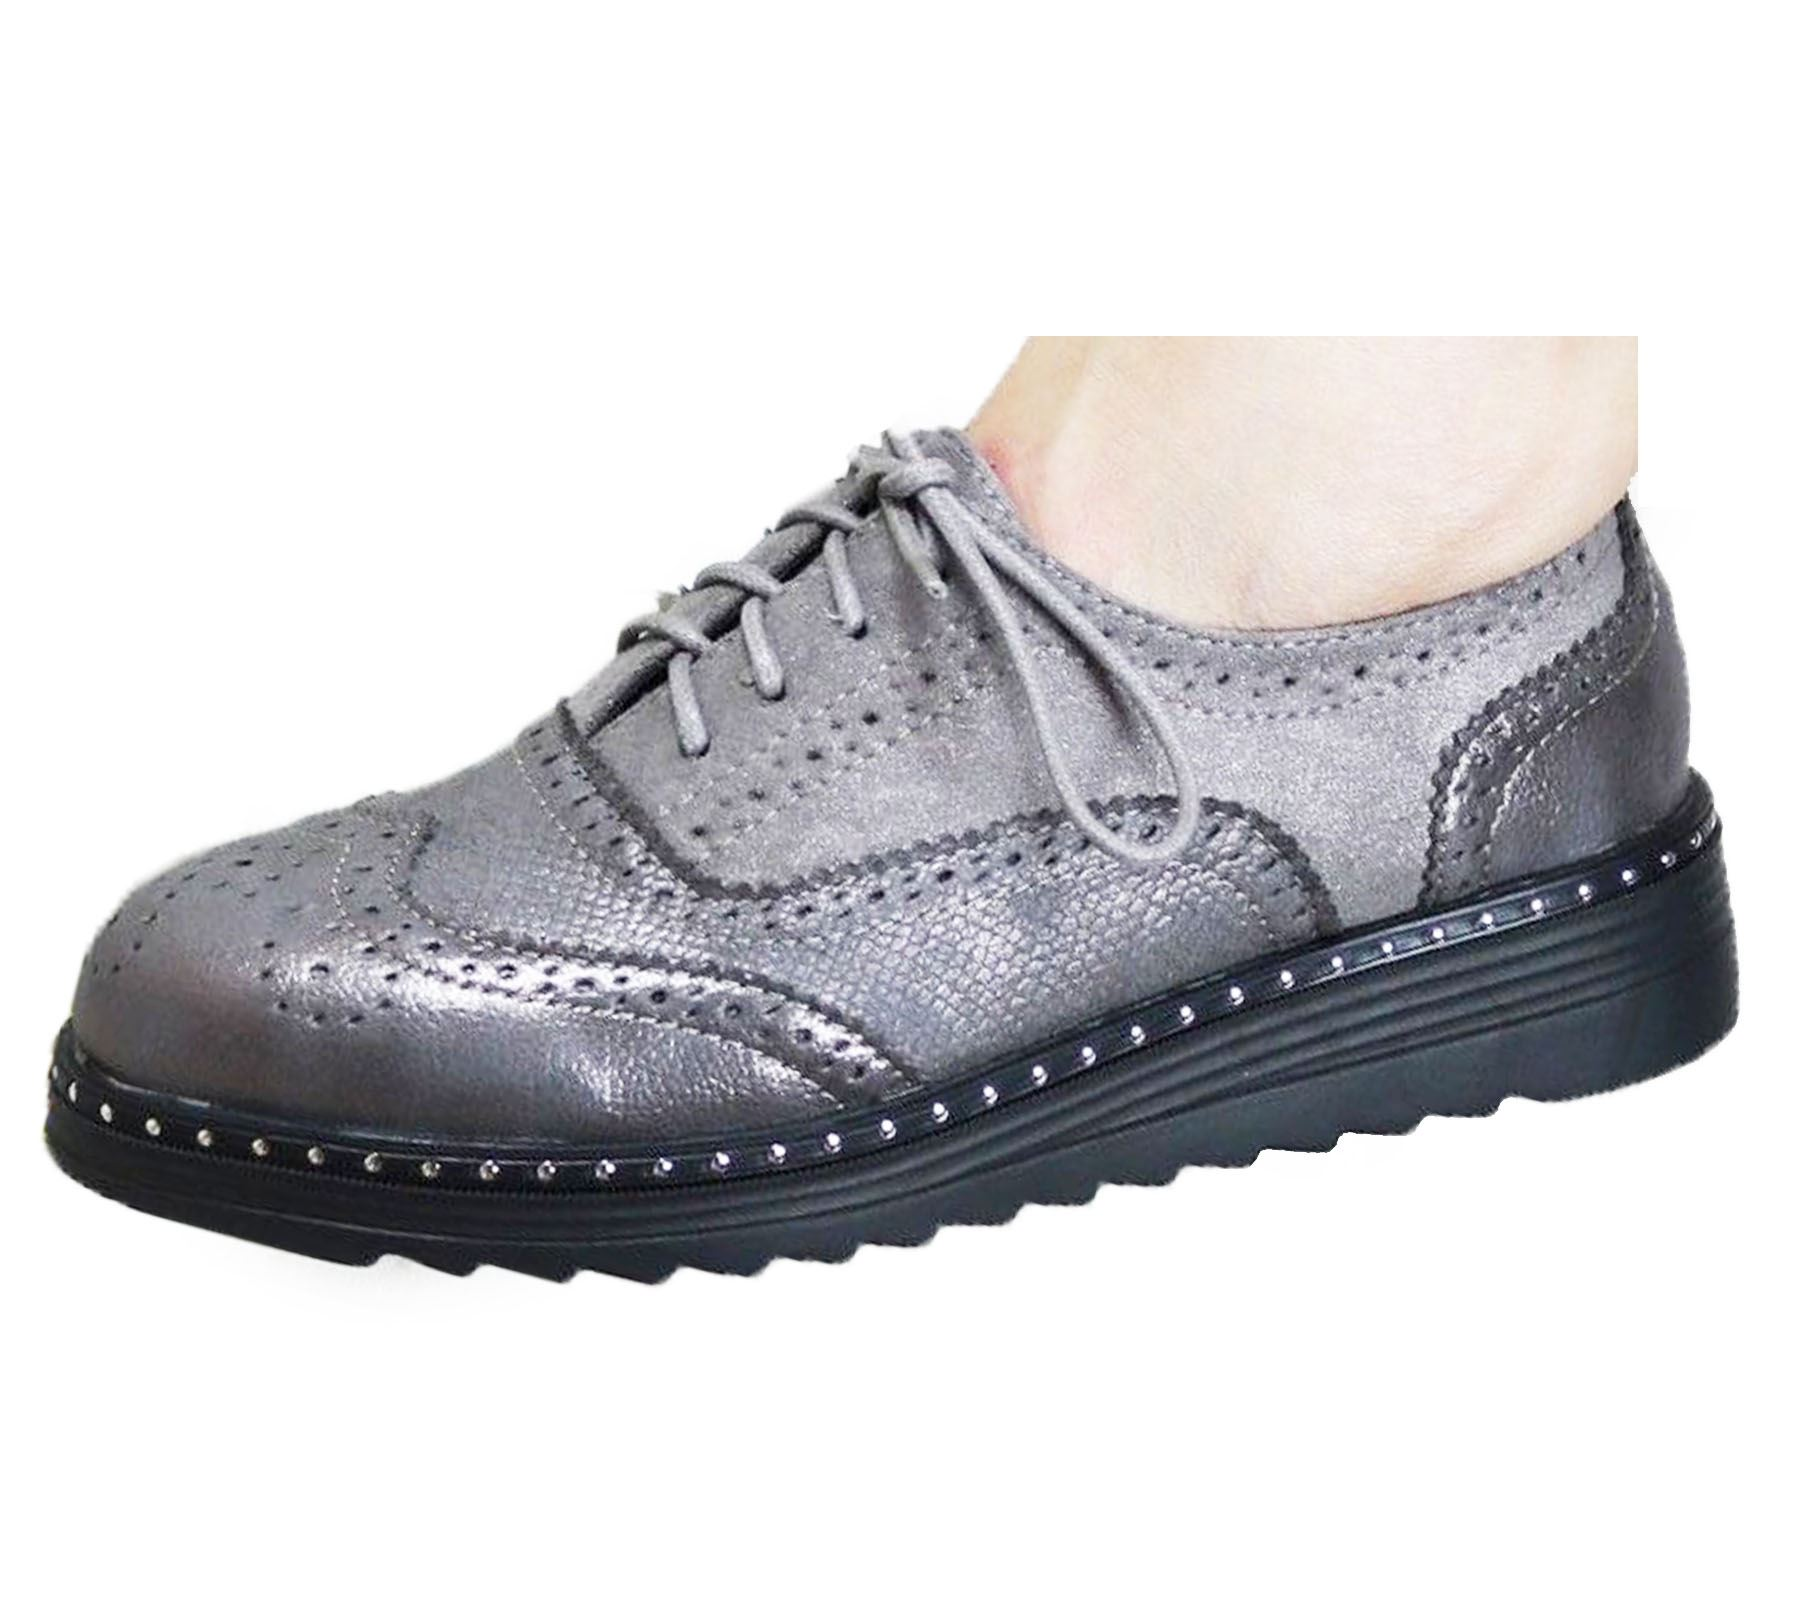 Ladies-Brogue-Lace-Up-Shoes-Womens-Oxford-Smart-Office-Loafers-Shoes miniatura 16